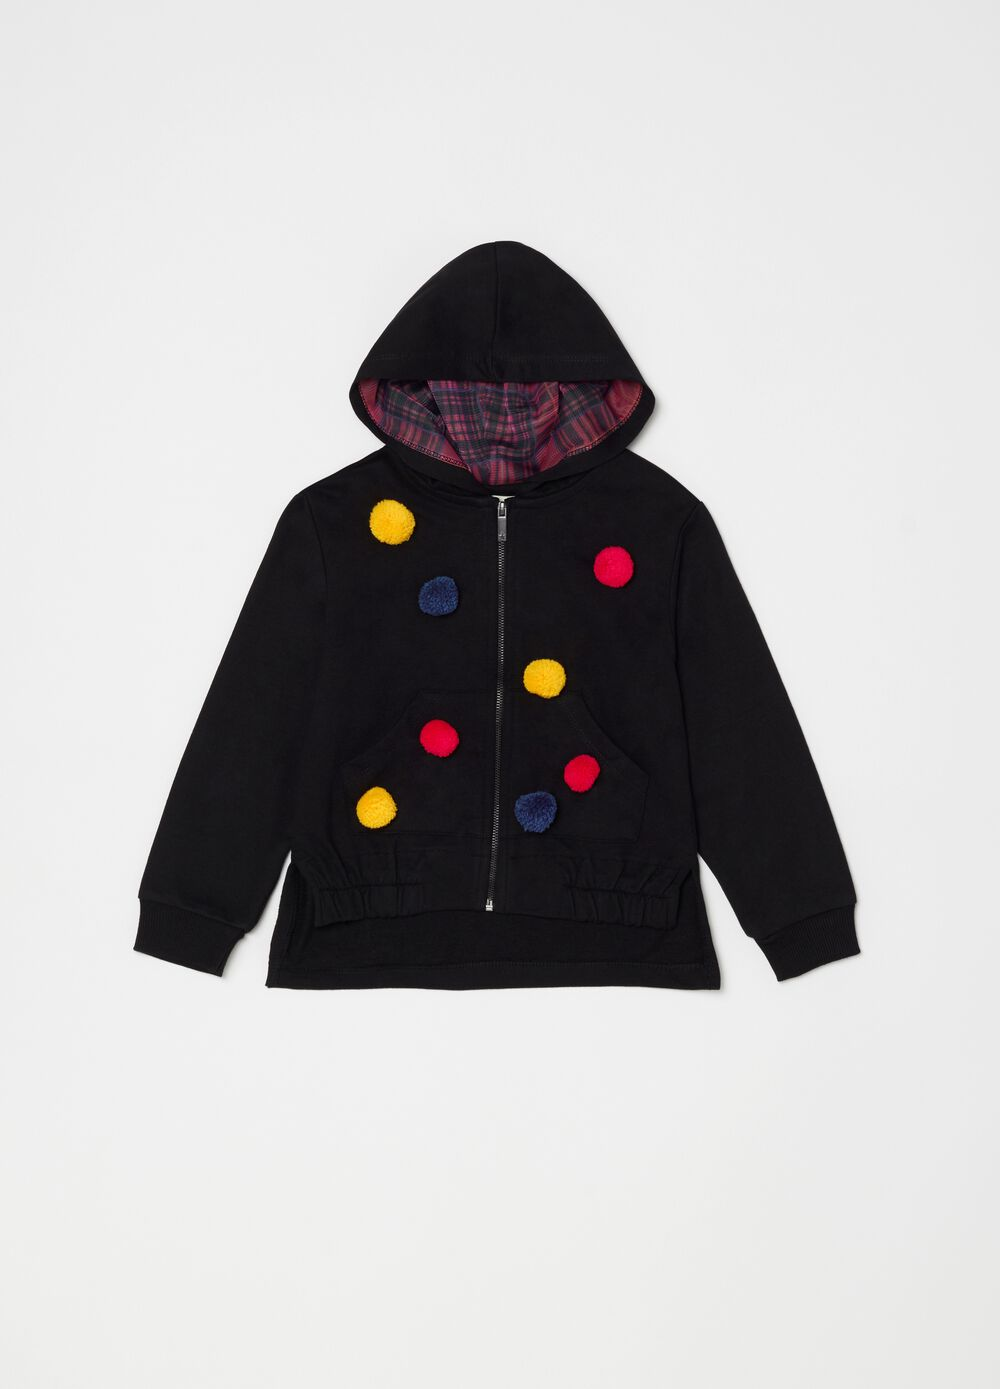 Sweatshirt with hood pompoms and pockets